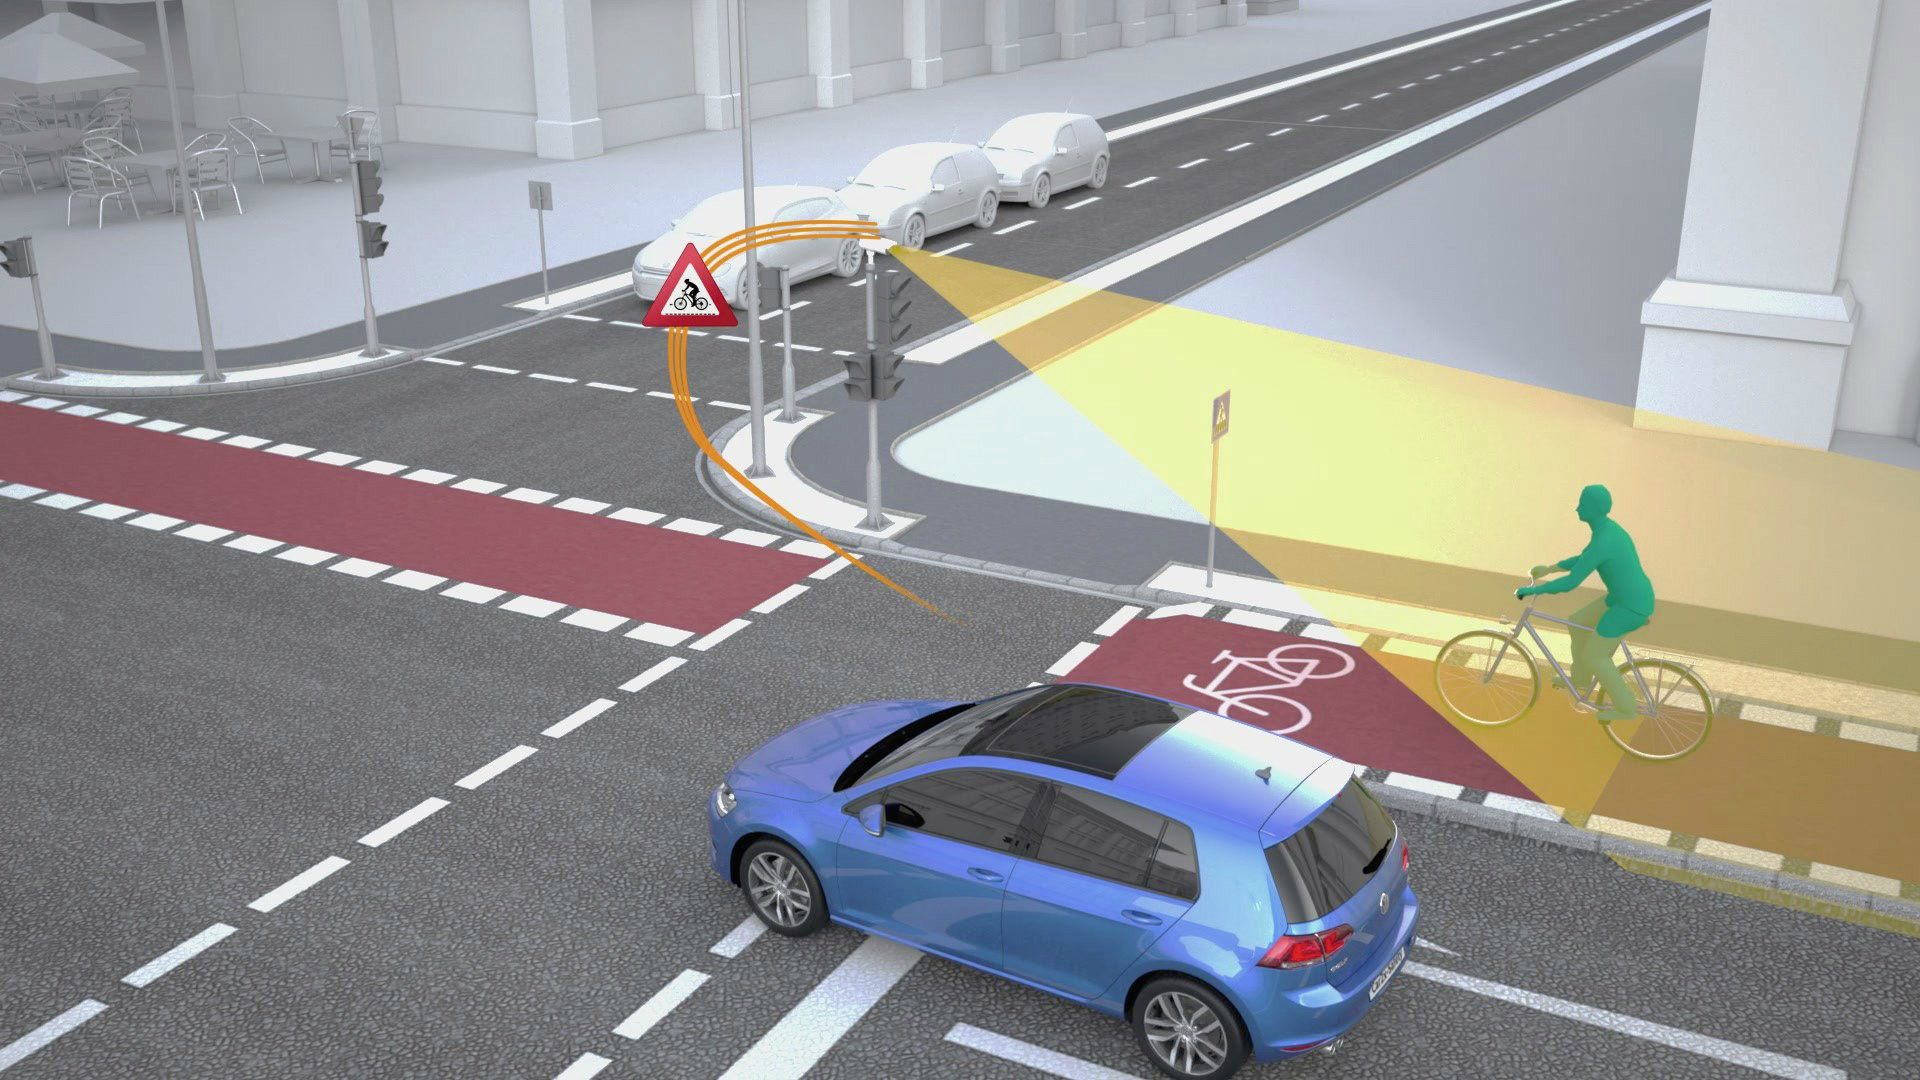 The two German companies have developed new functions for the local exchange of information between vehicles and digital transport infrastructure such as traffic lights, thereby improving safety for all road users.